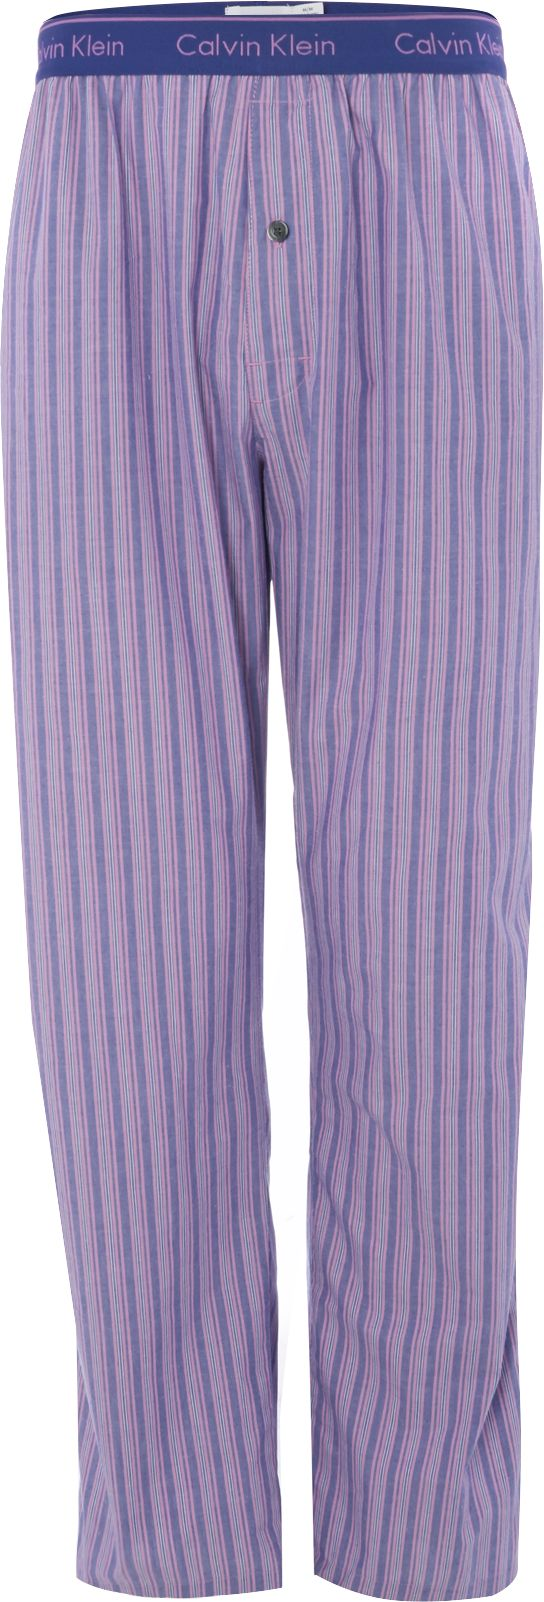 Brooks stripe pant